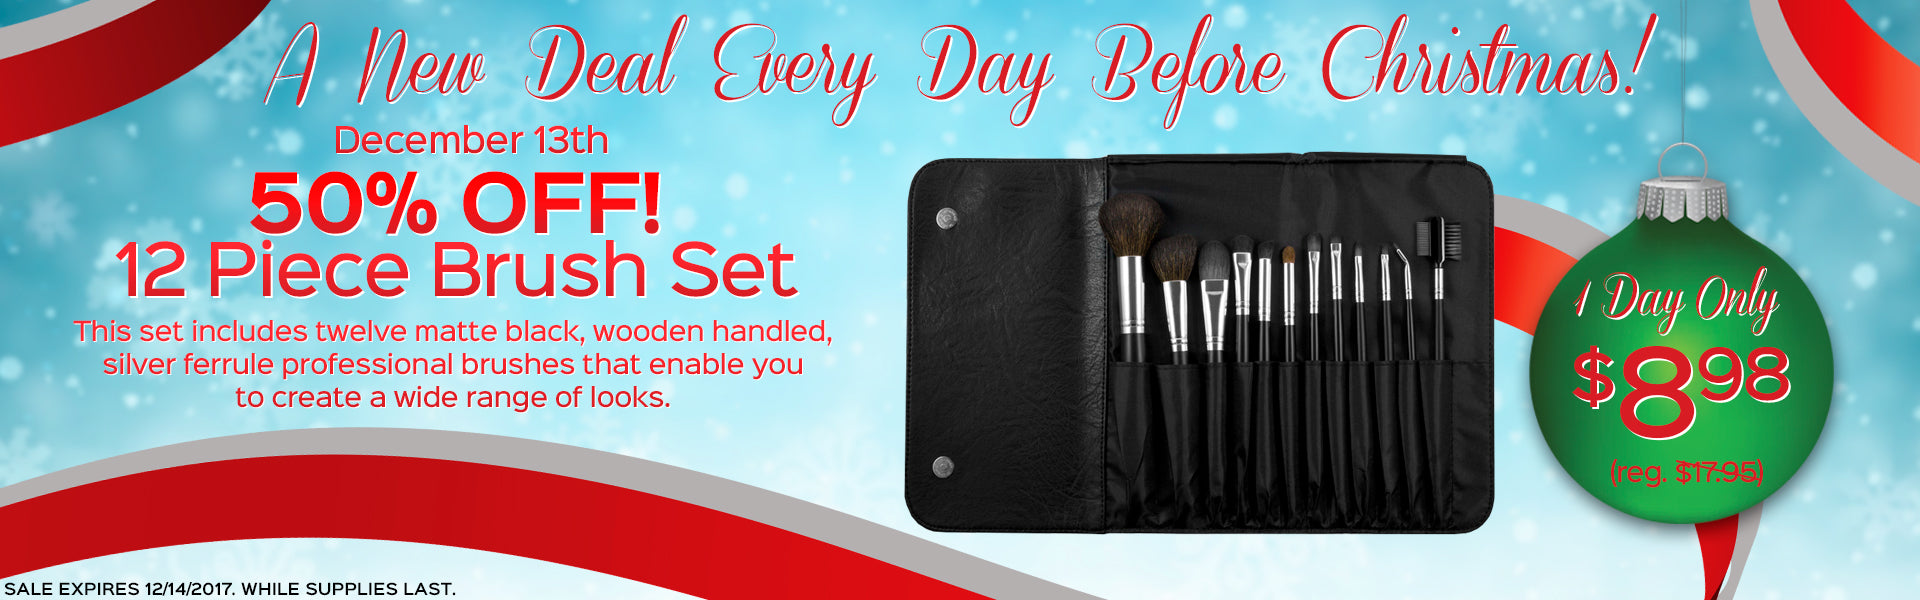 A New Deal Every Day Before Christmas! 12 Piece Brush Set Now Only $8.98, Reg. $17.95 - 1 Day Only!